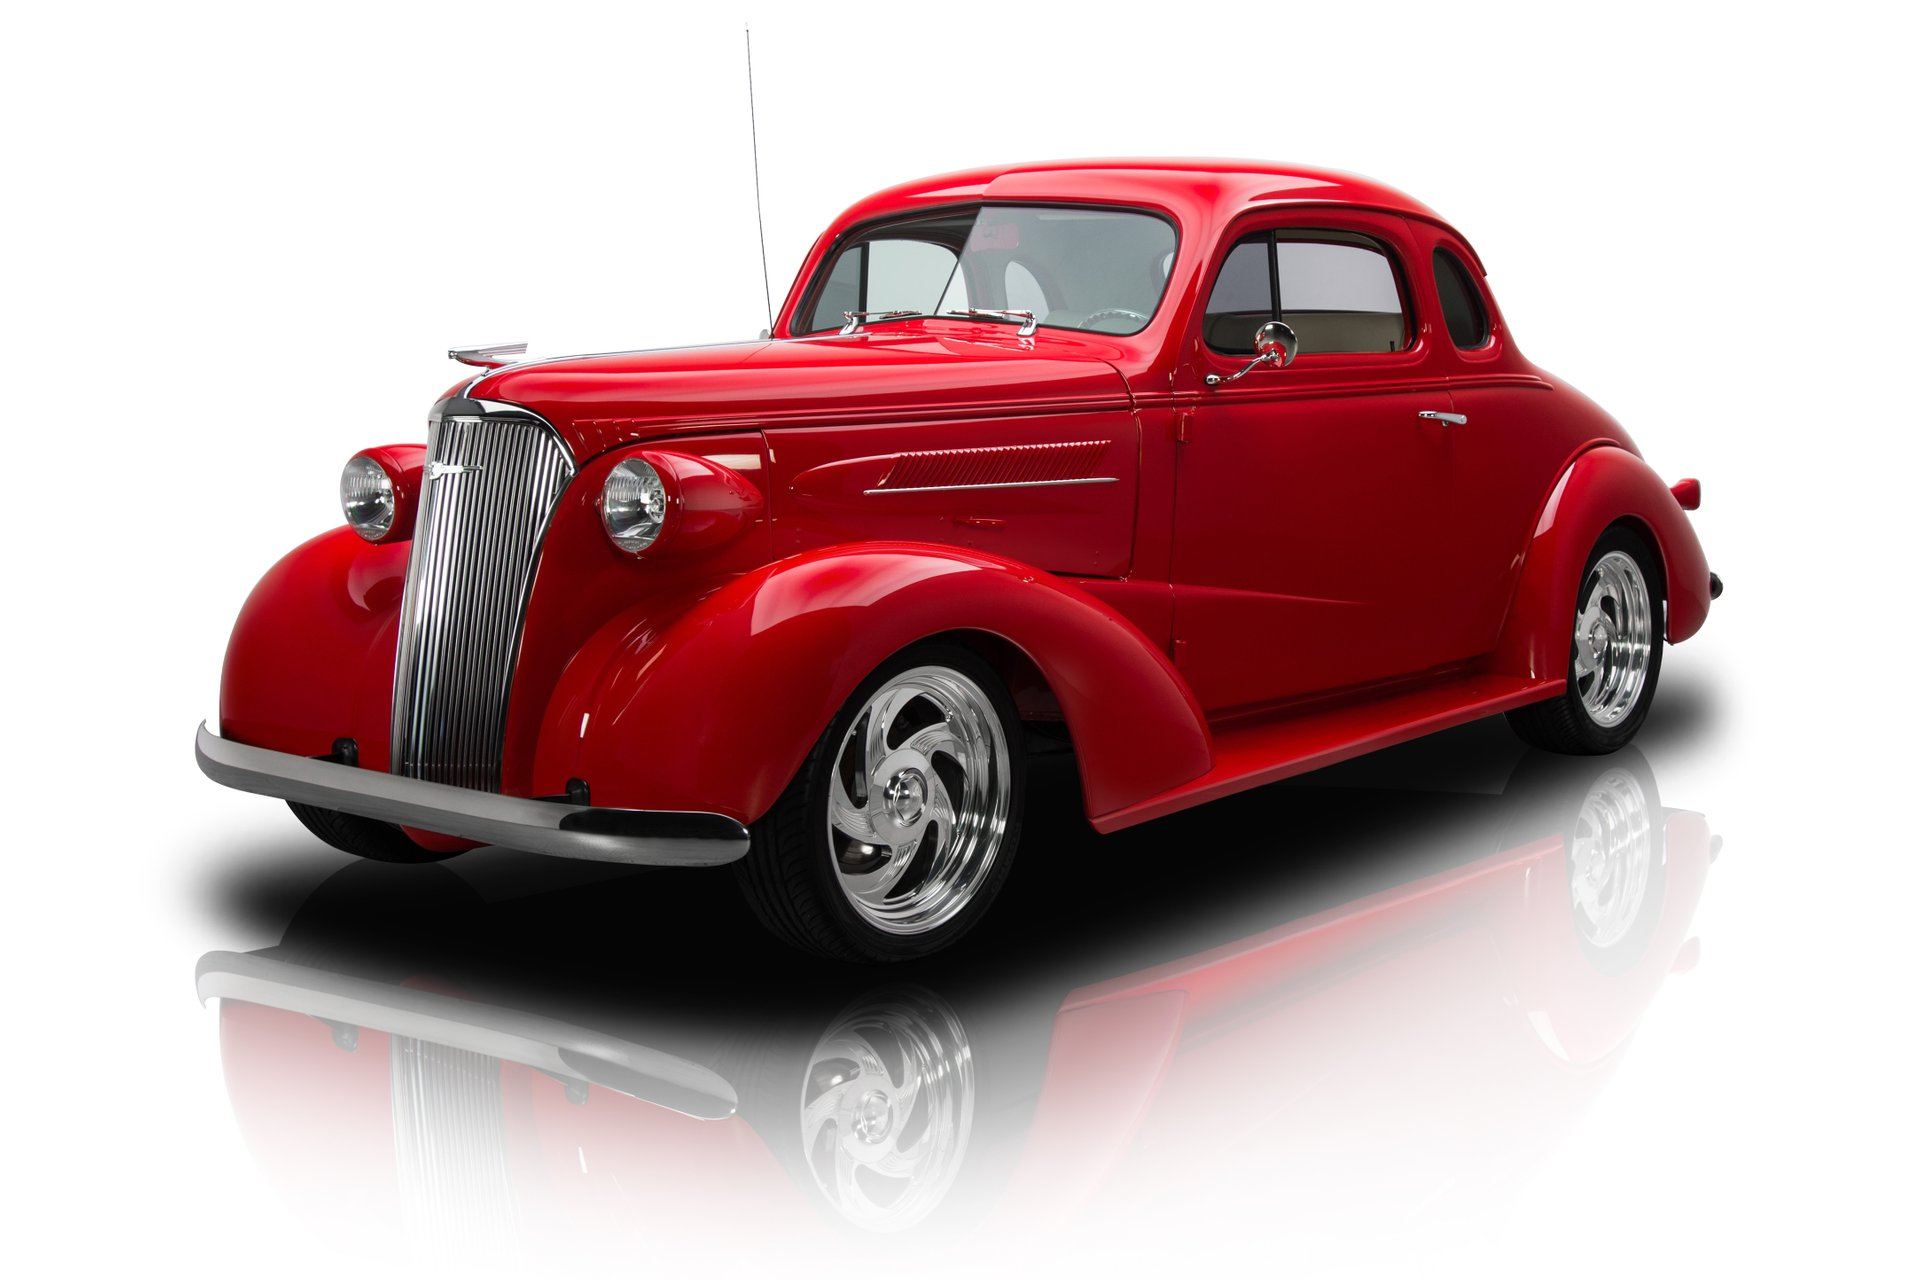 134922 1937 Chevrolet Coupe Rk Motors Classic Cars For Sale 1941 Mercury Eight Frame Off Built Steel Efi Ls1 V8 4l60e 4 Speed Automatic With A C